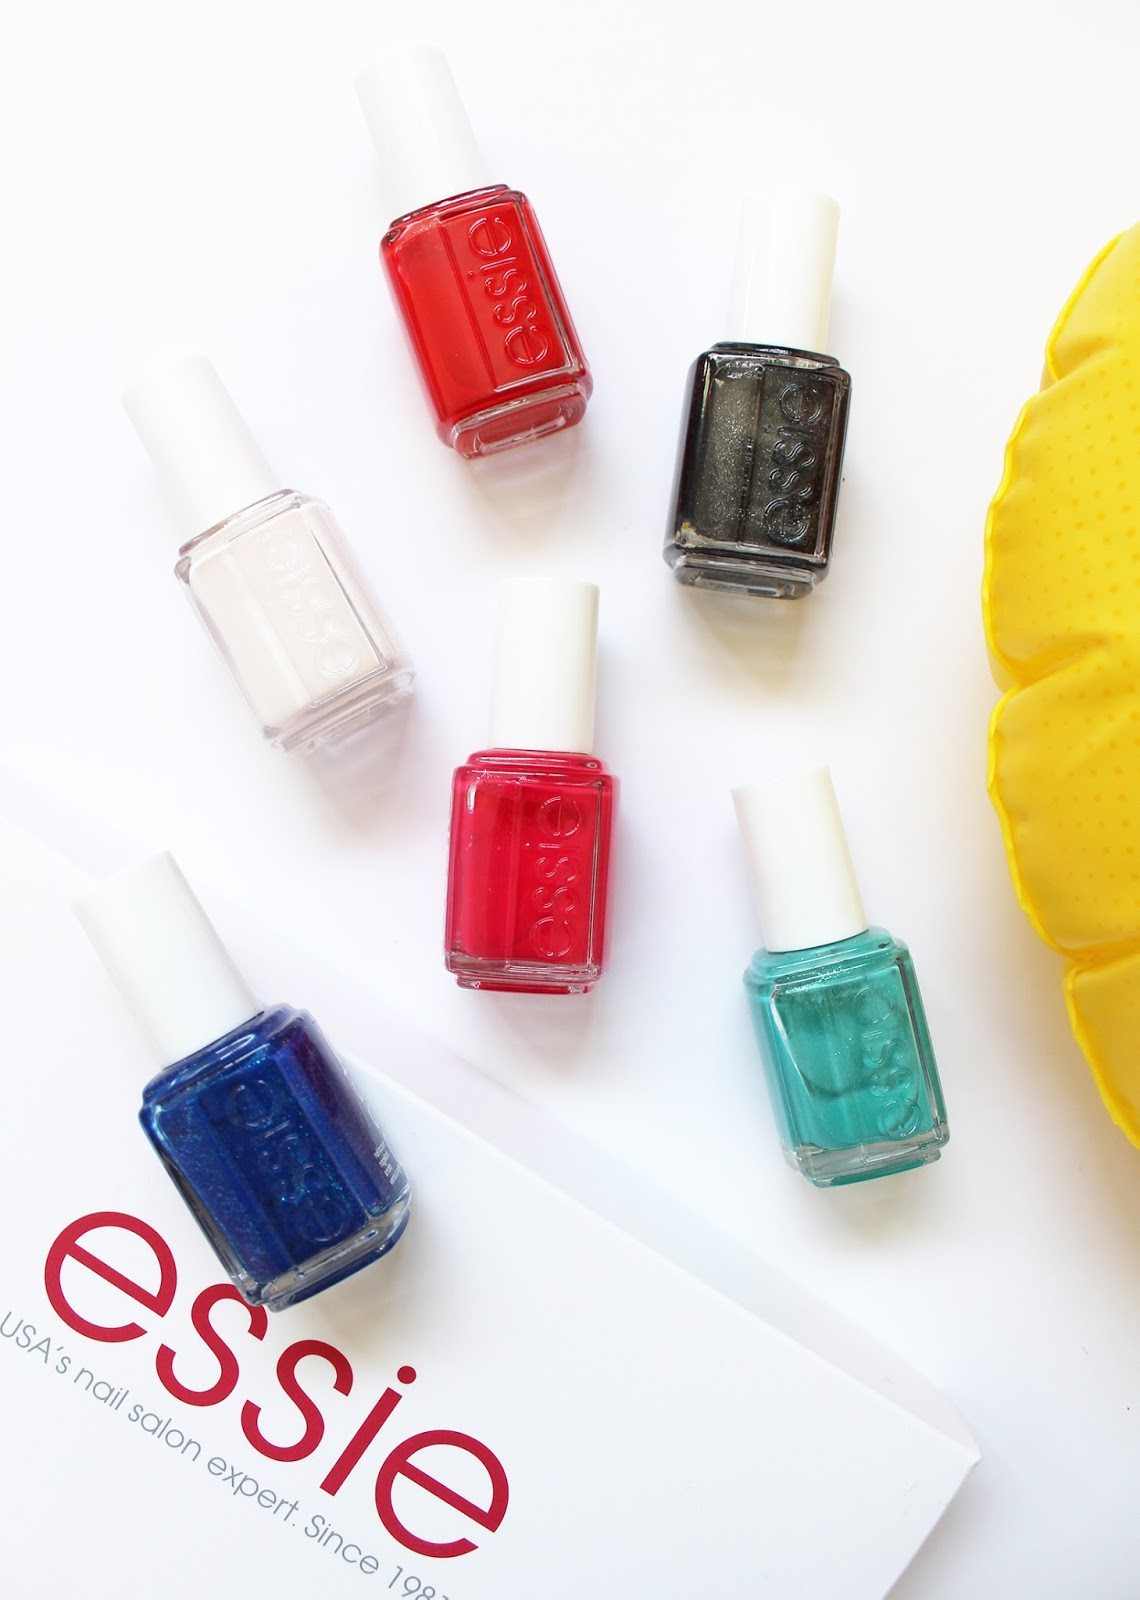 ESSIE | Summer Nail Polish Collection - Review + Swatches - CassandraMyee